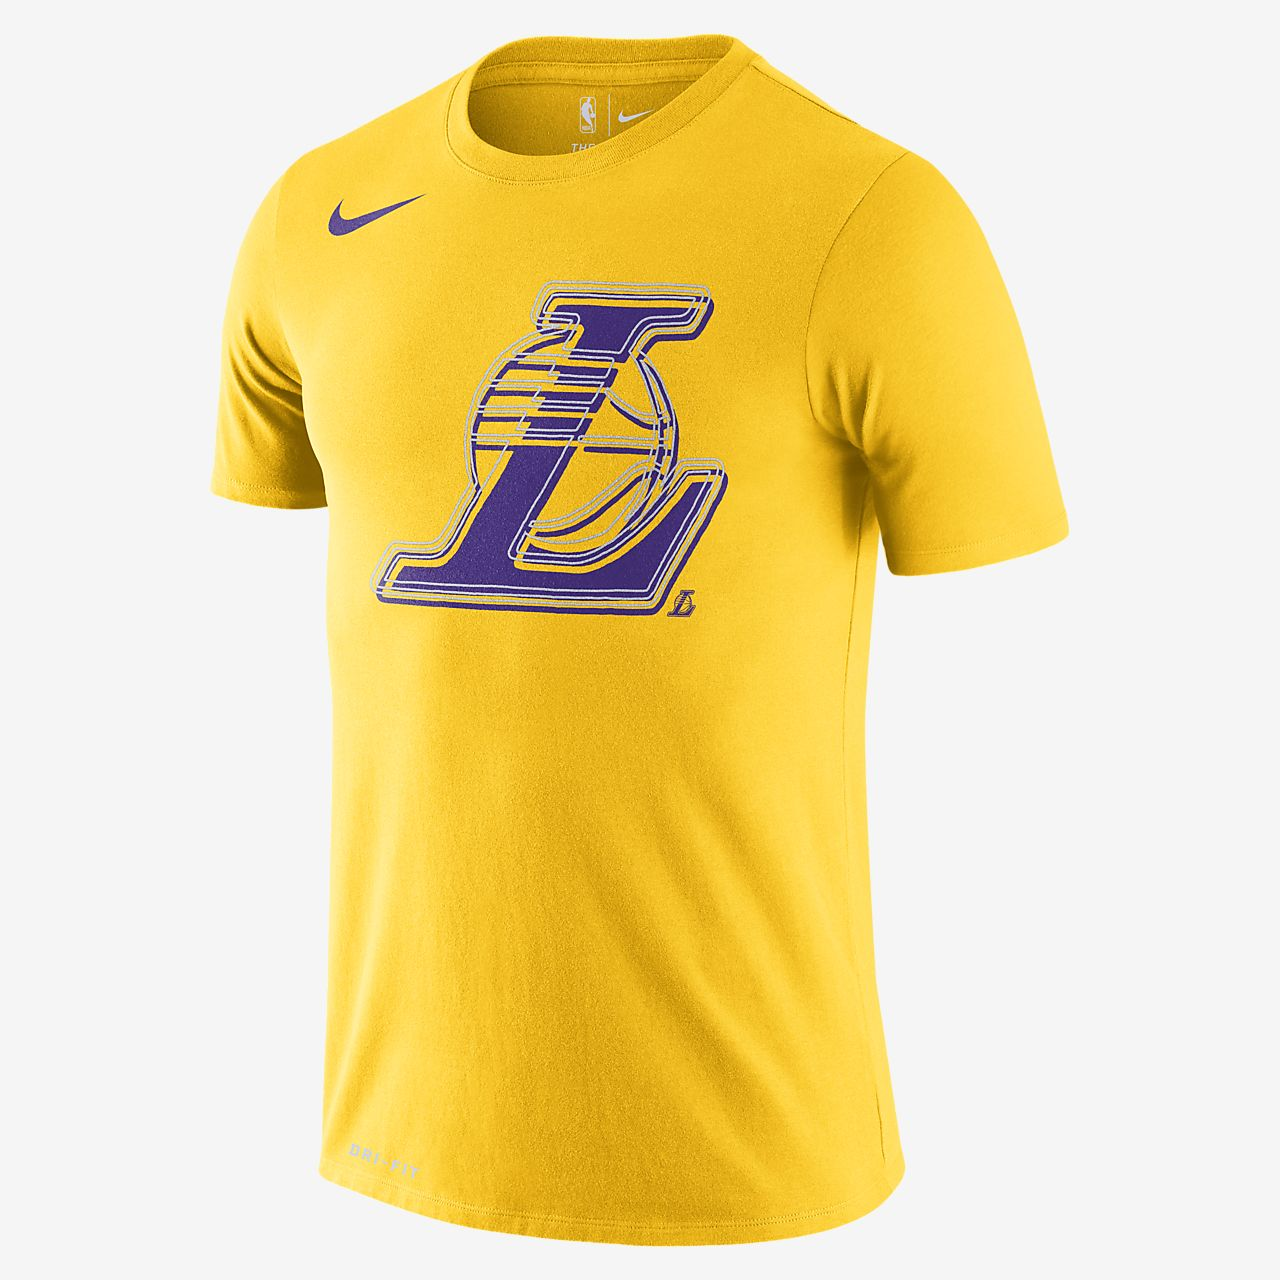 NBA-t-shirt Los Angeles Lakers Logo Nike Dri-FIT för män